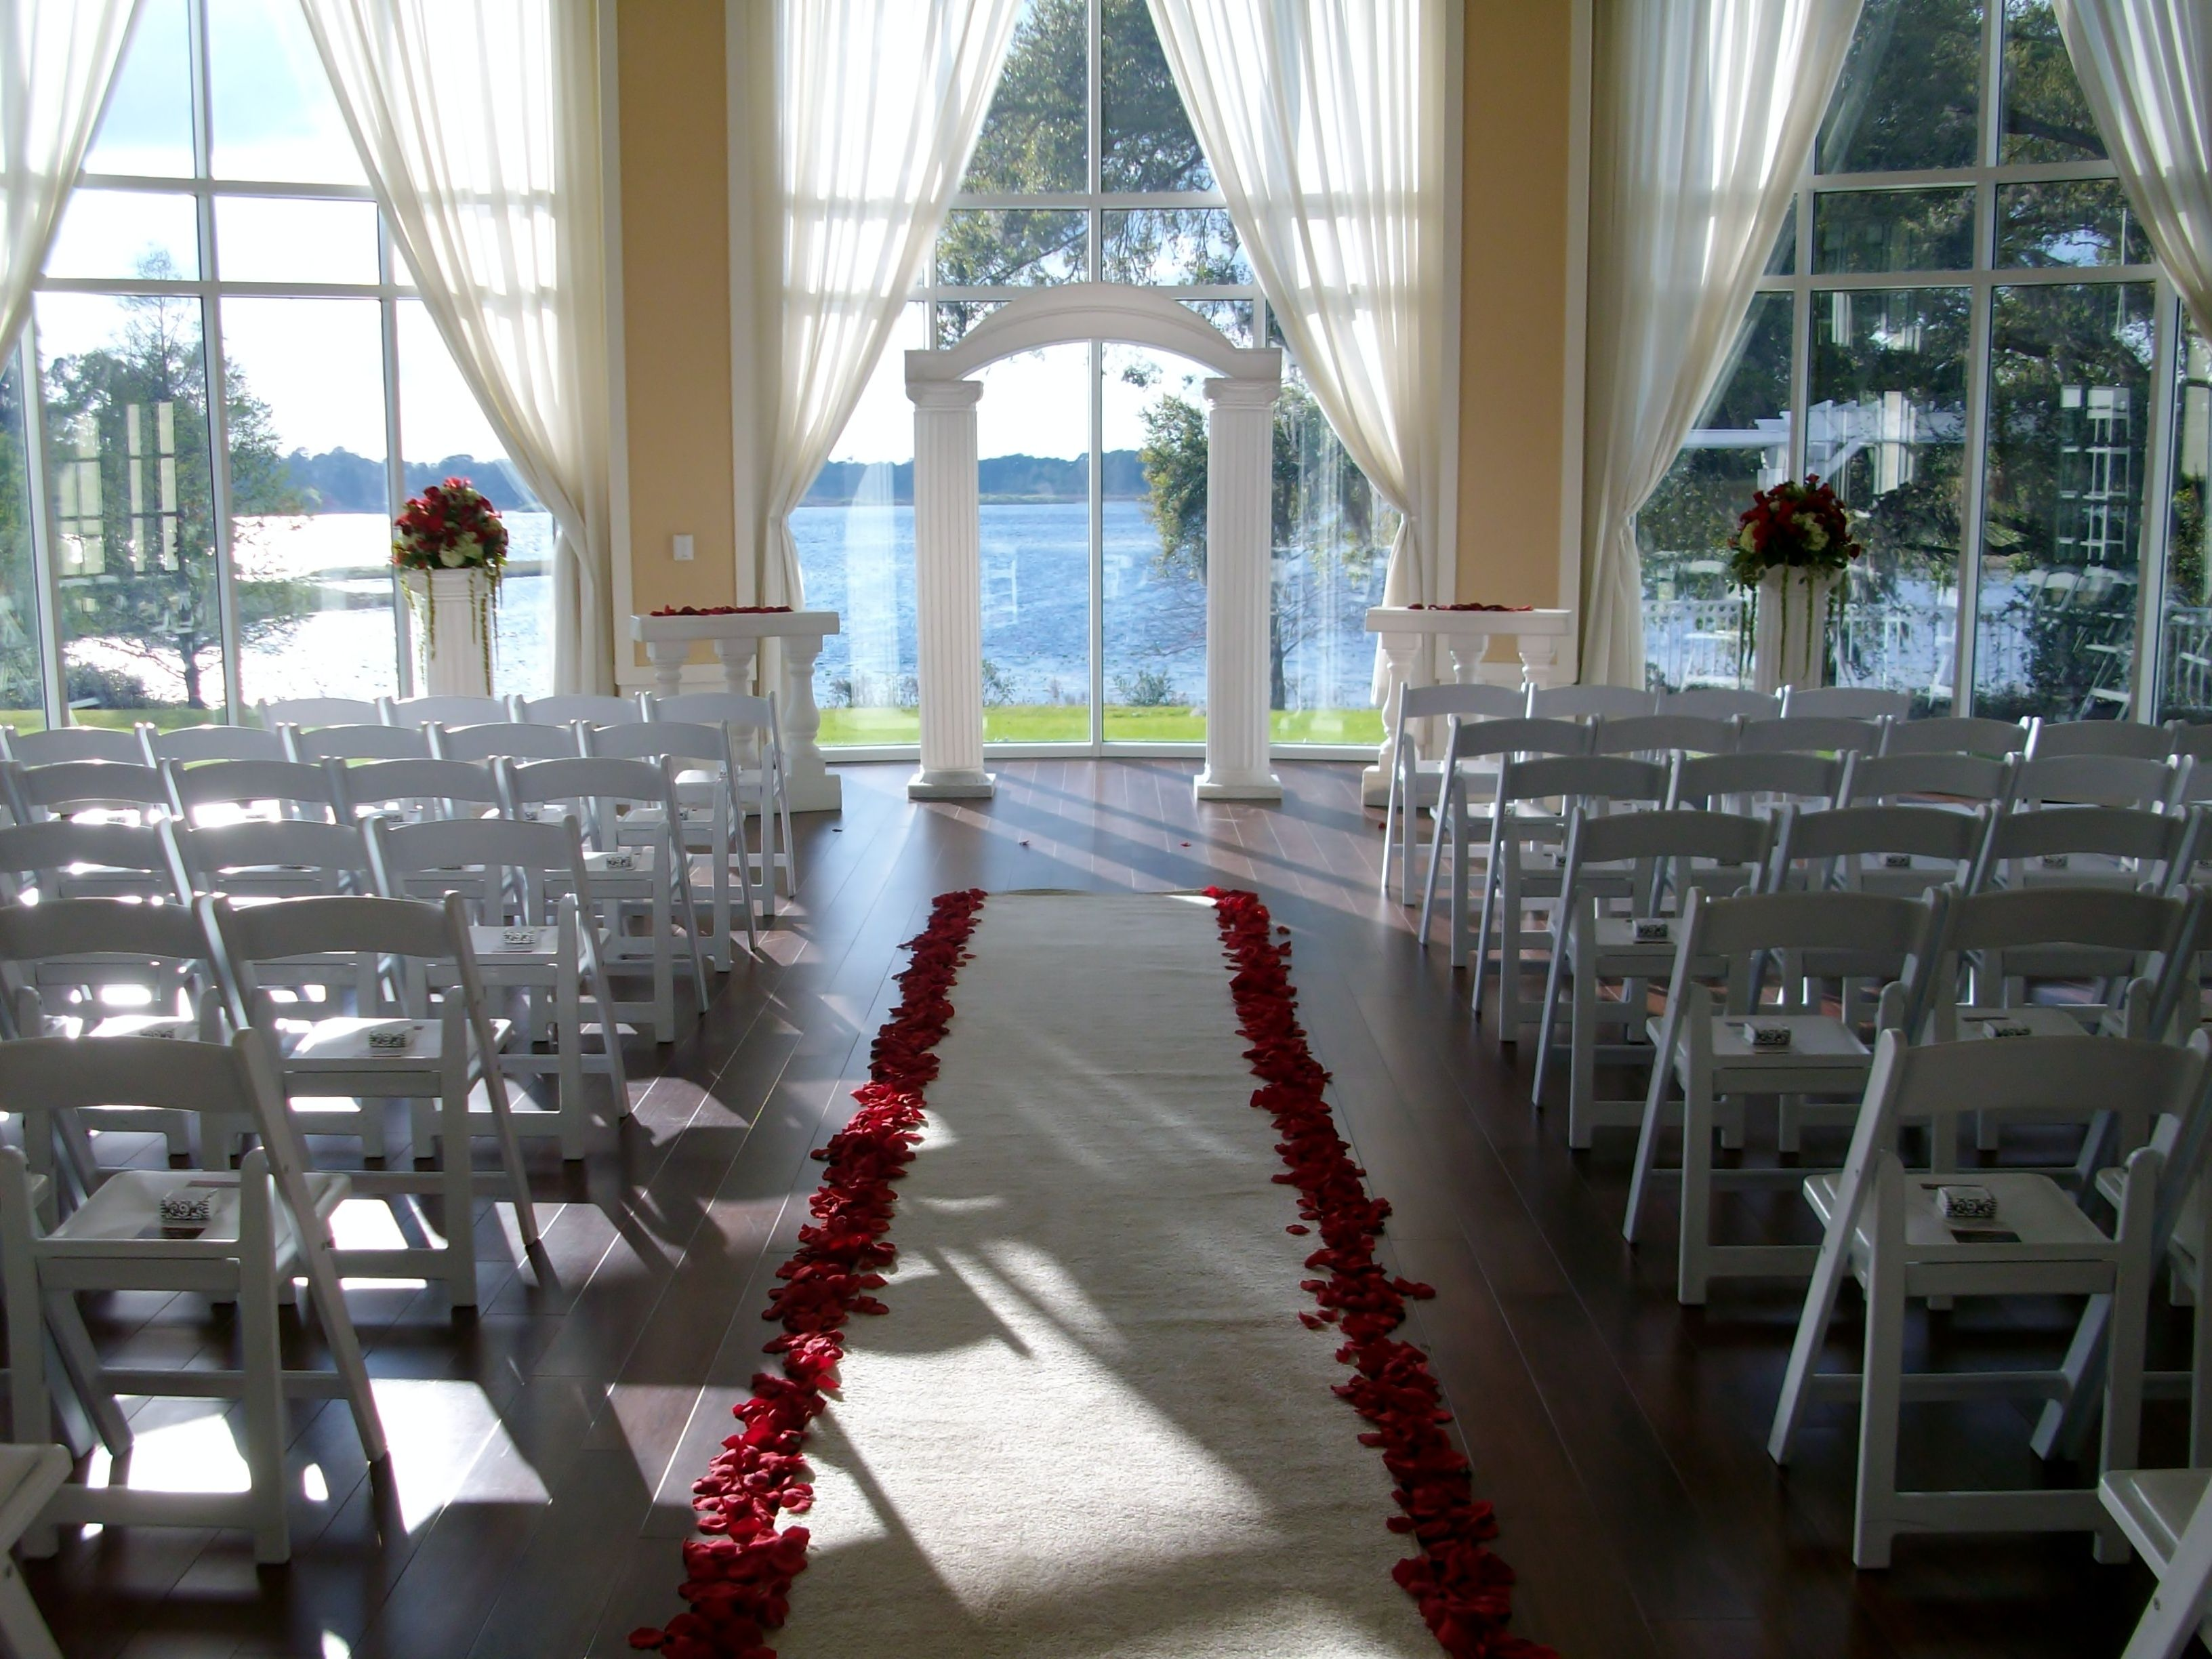 Wood Floor Lake View Large Windows And A Gorgeous Room Make This Beautiful Wedding Location In Central Florida